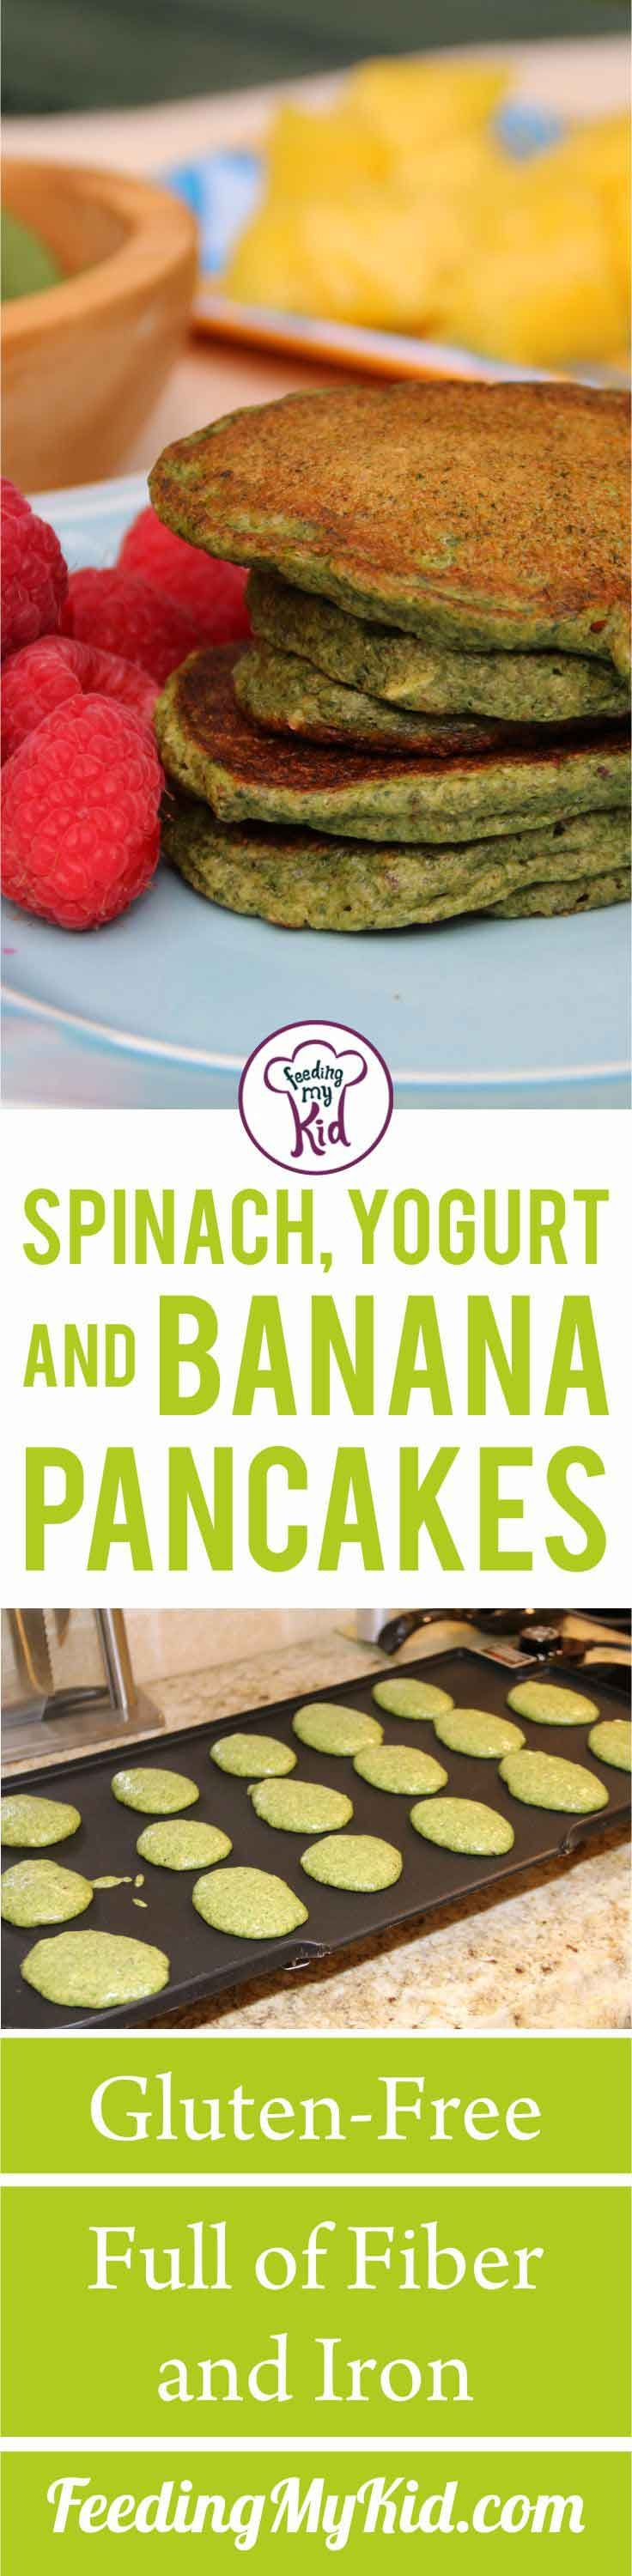 These spinach-filled healthy pancakes are delicious and full of added nutrition. Try these out for breakfast for a vitamin-packed start to your day.